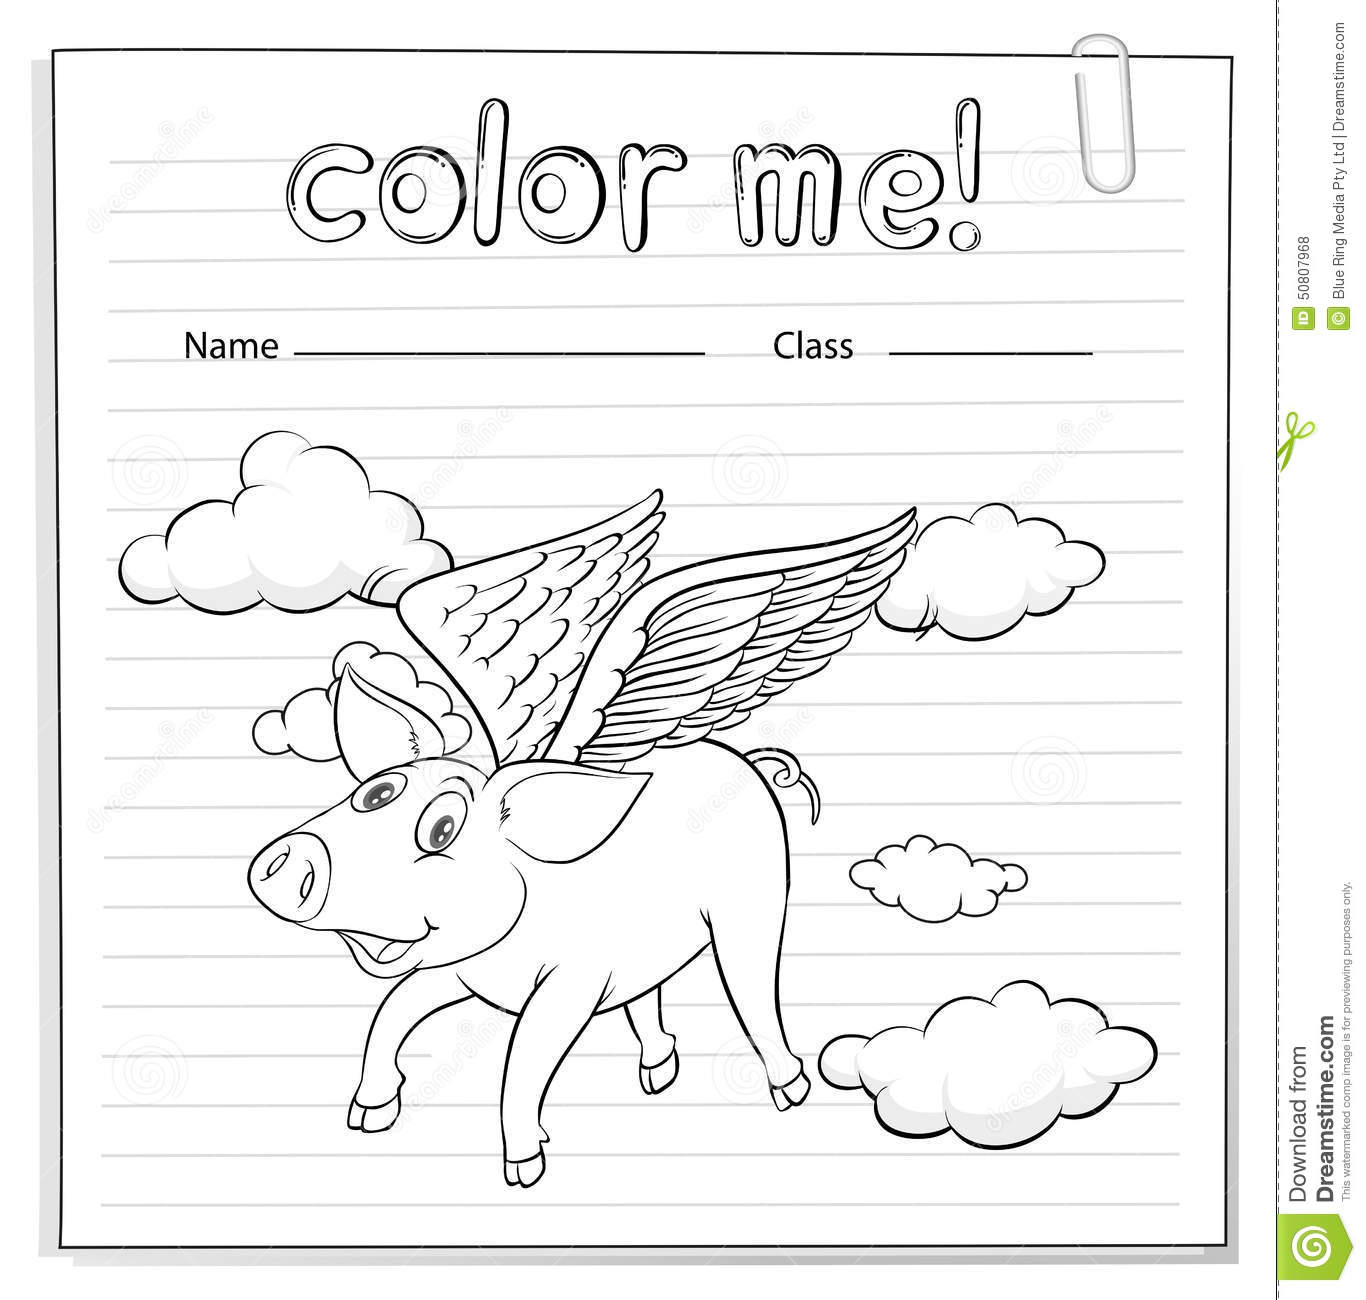 Worksheet With A Pig Stock Vector Illustration Of Angles